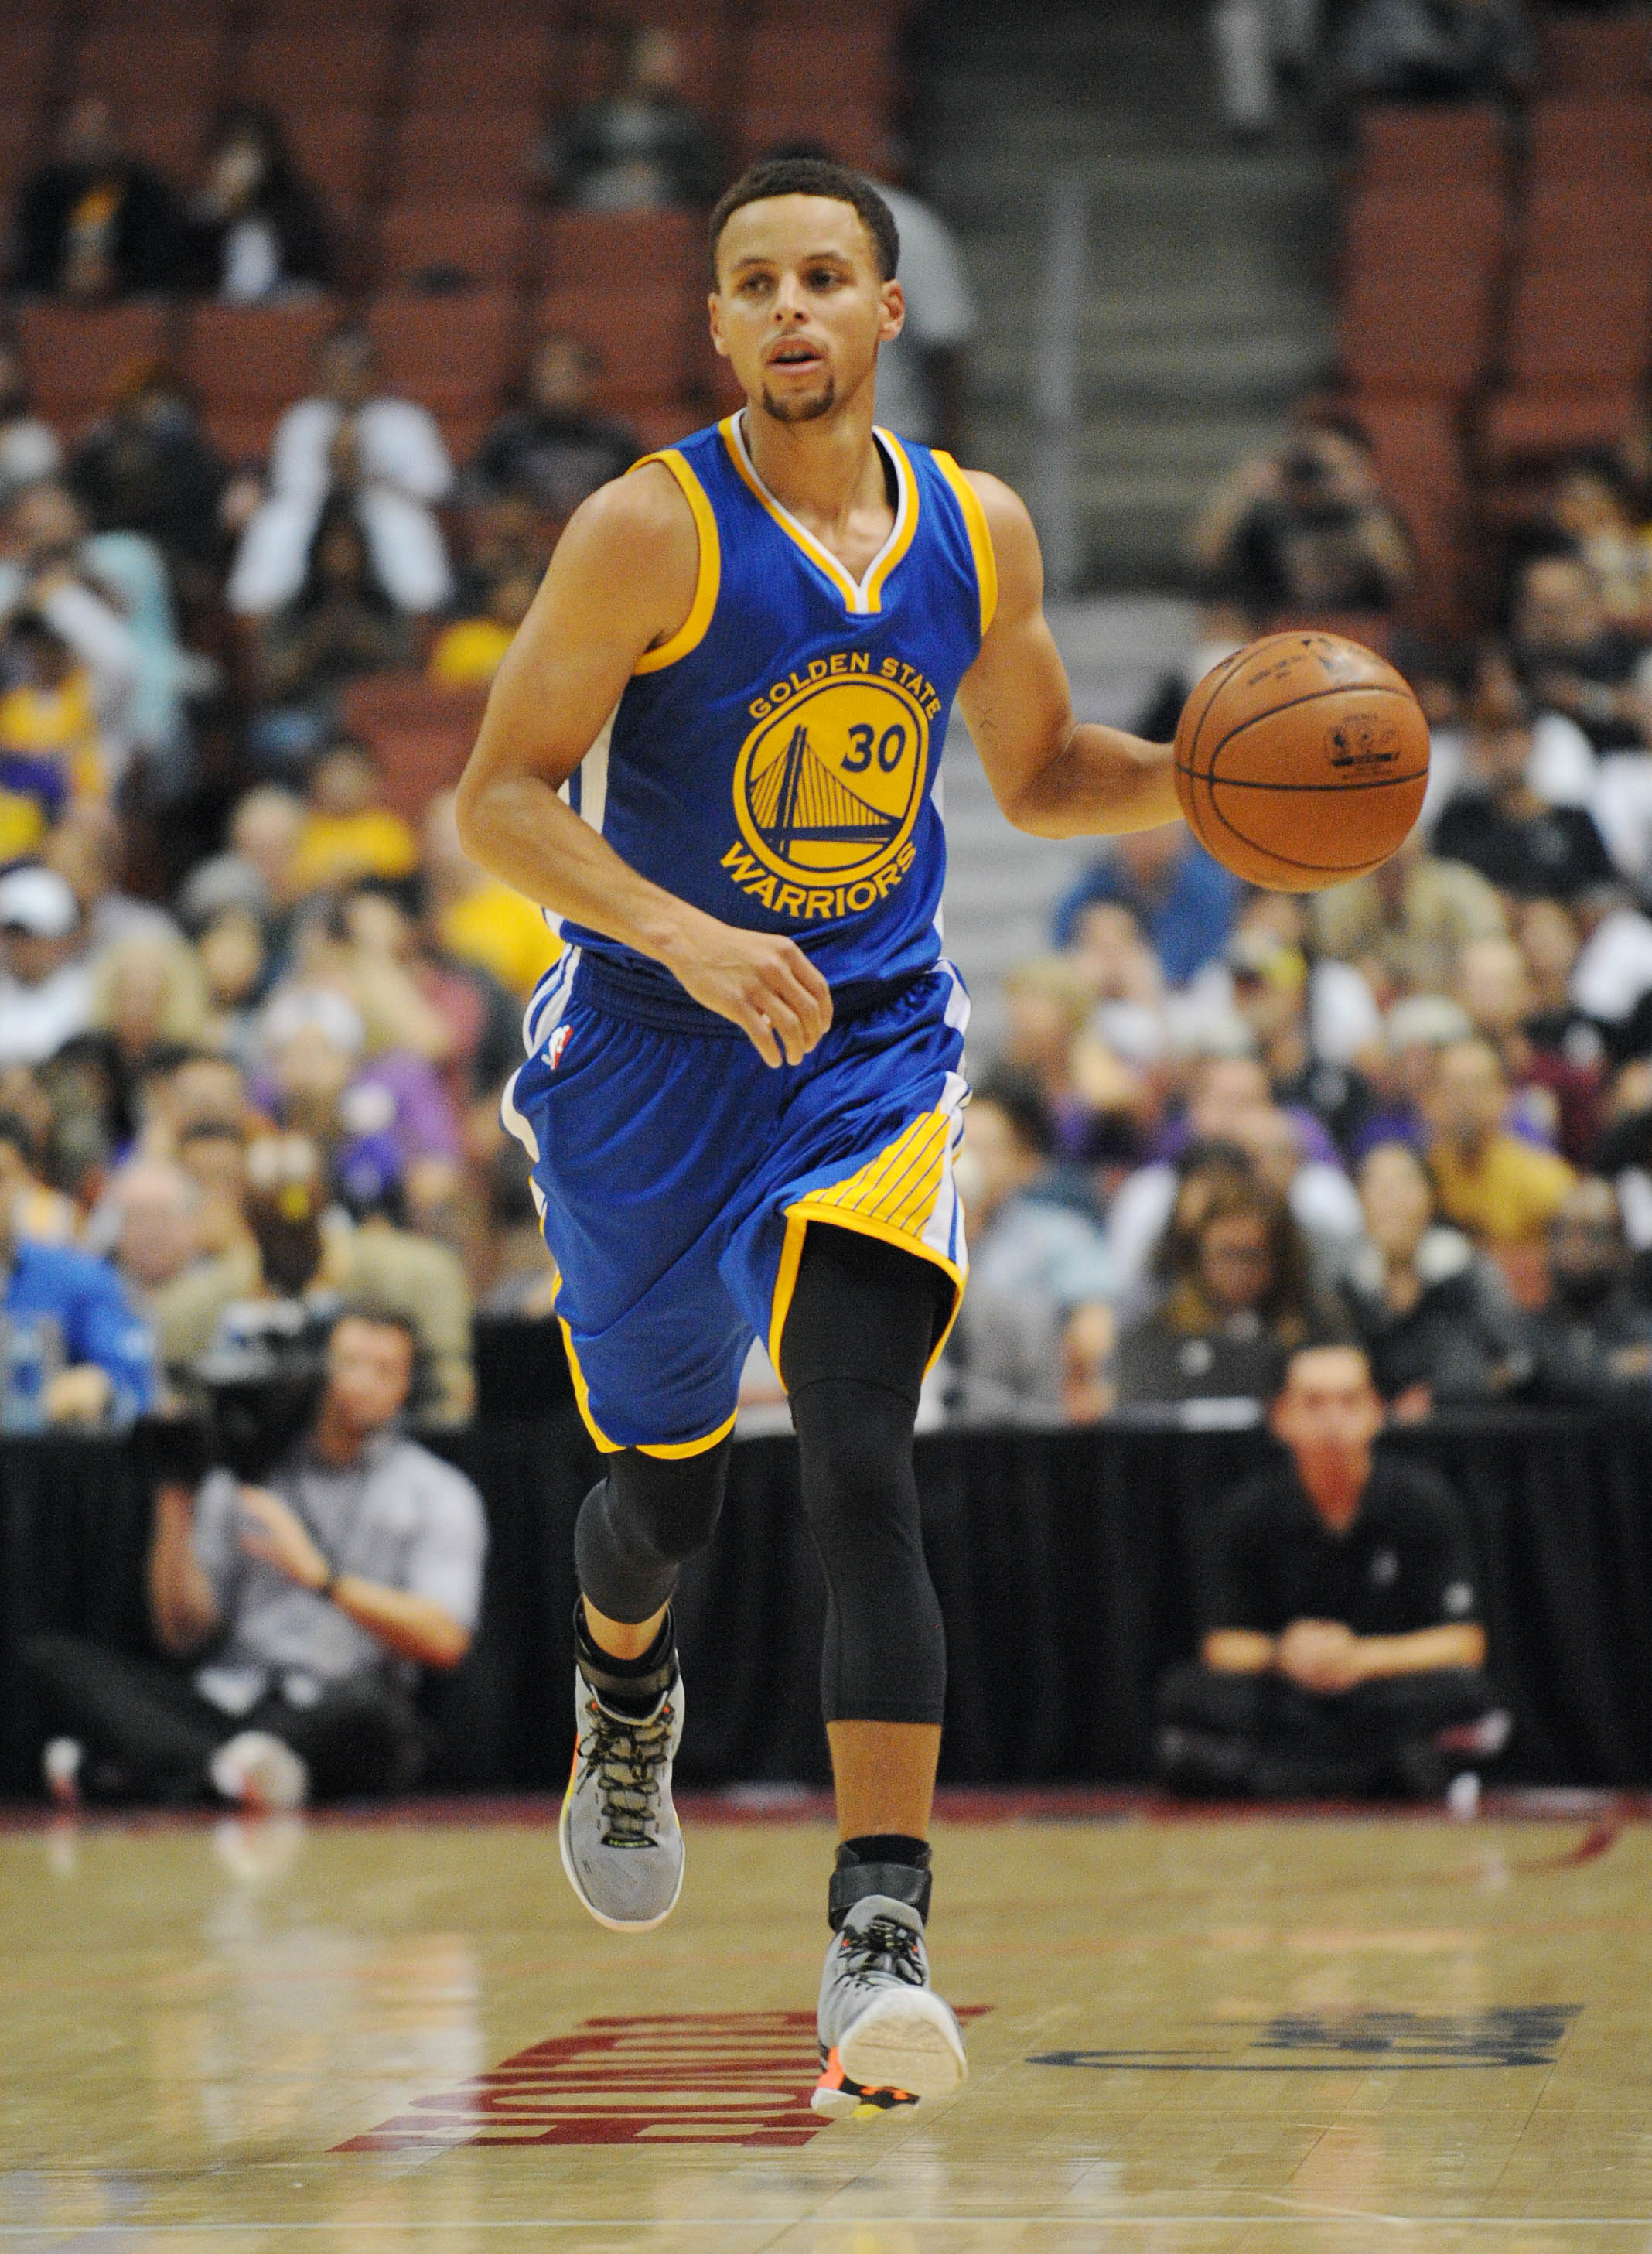 Steph Curry is the best 2-guard in the NBA. Duh.